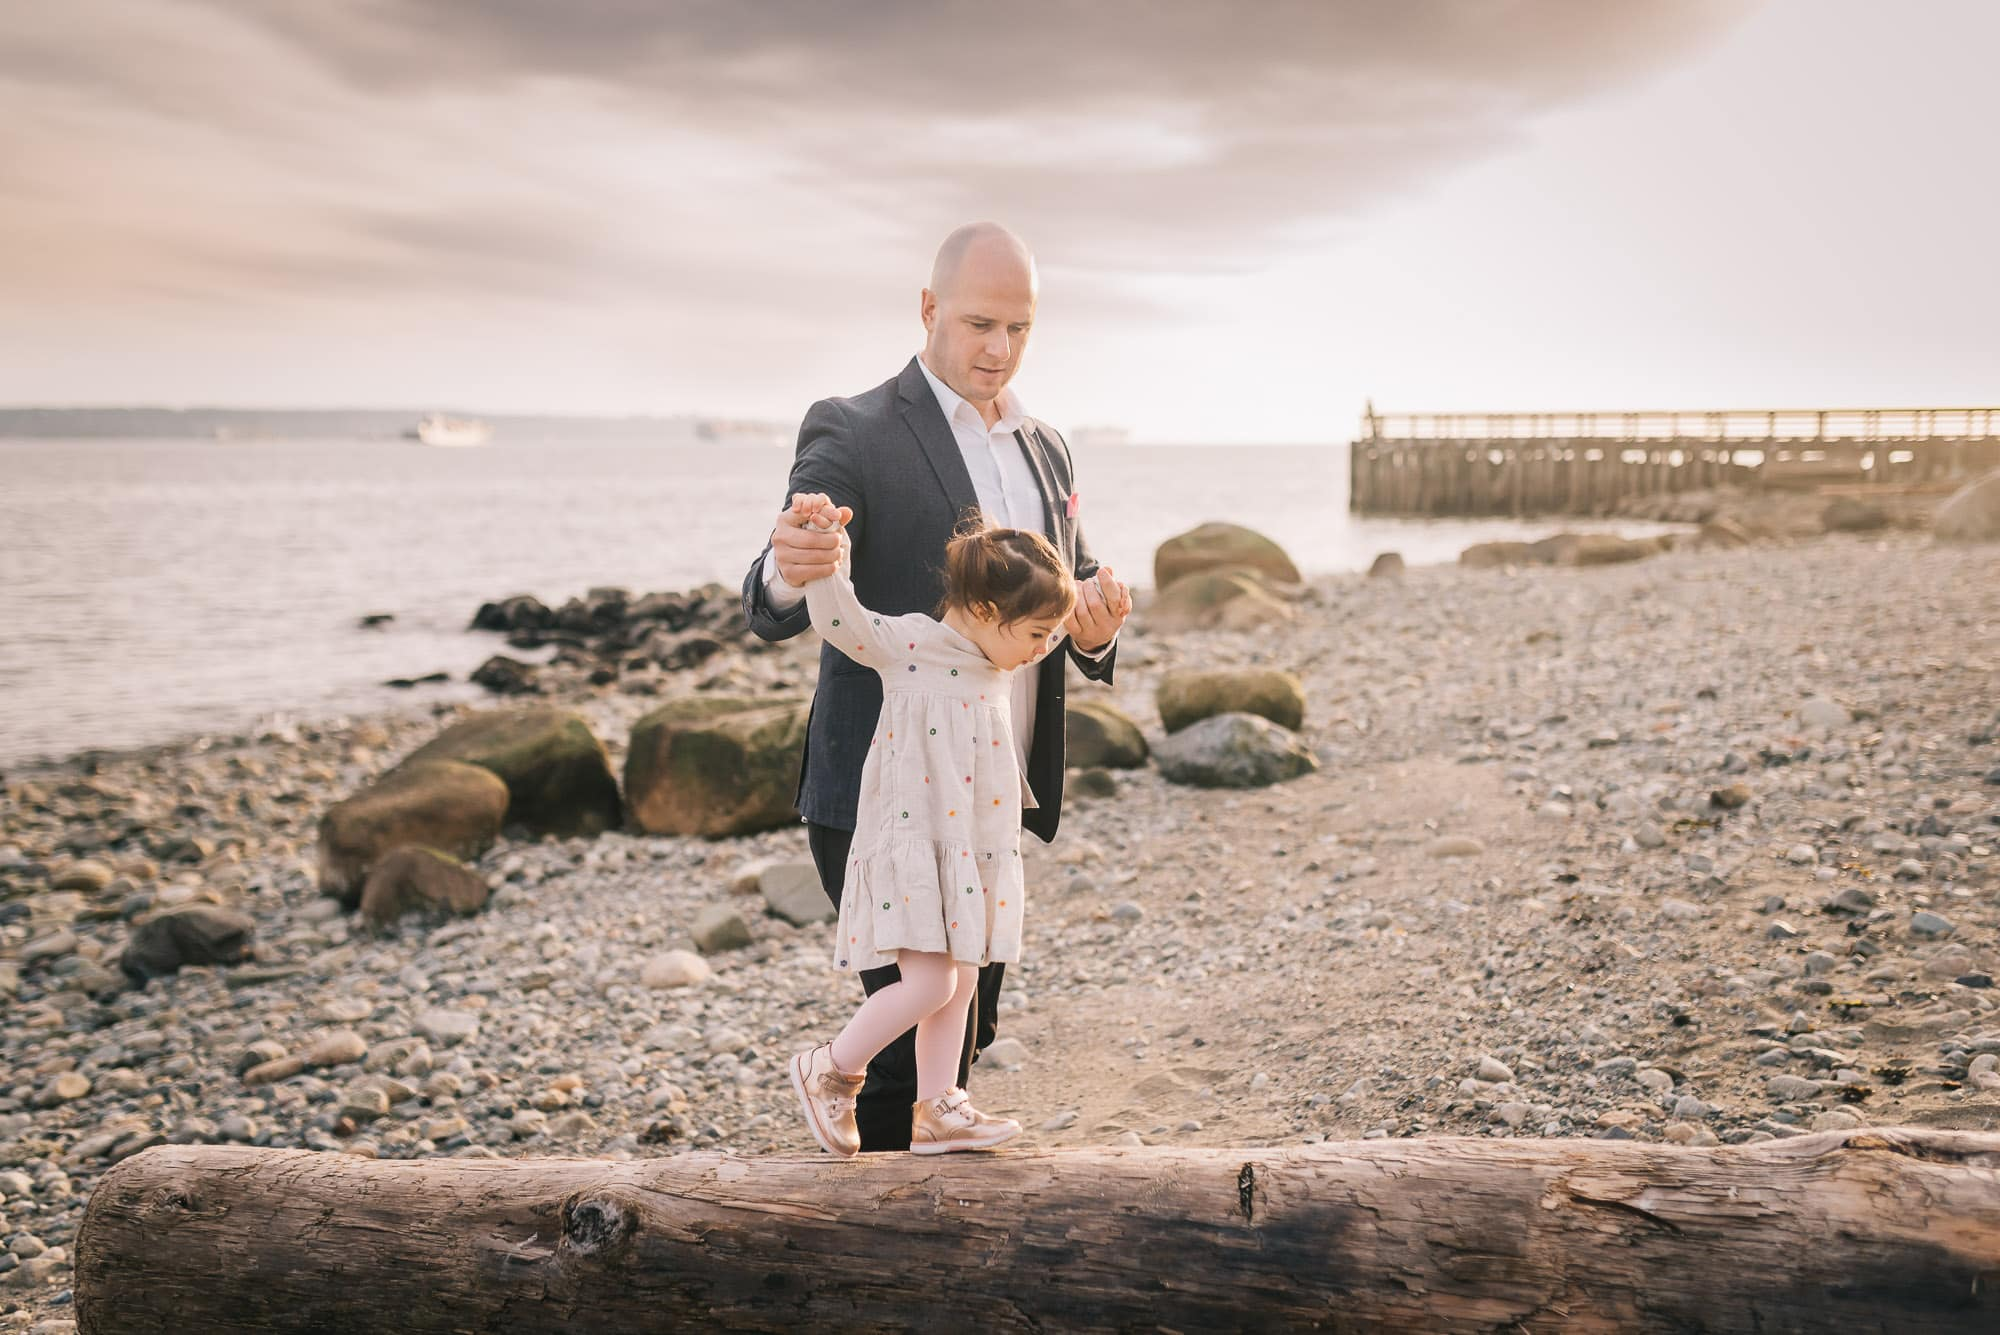 dad and daughter balancing on log during Ambleside family photo session